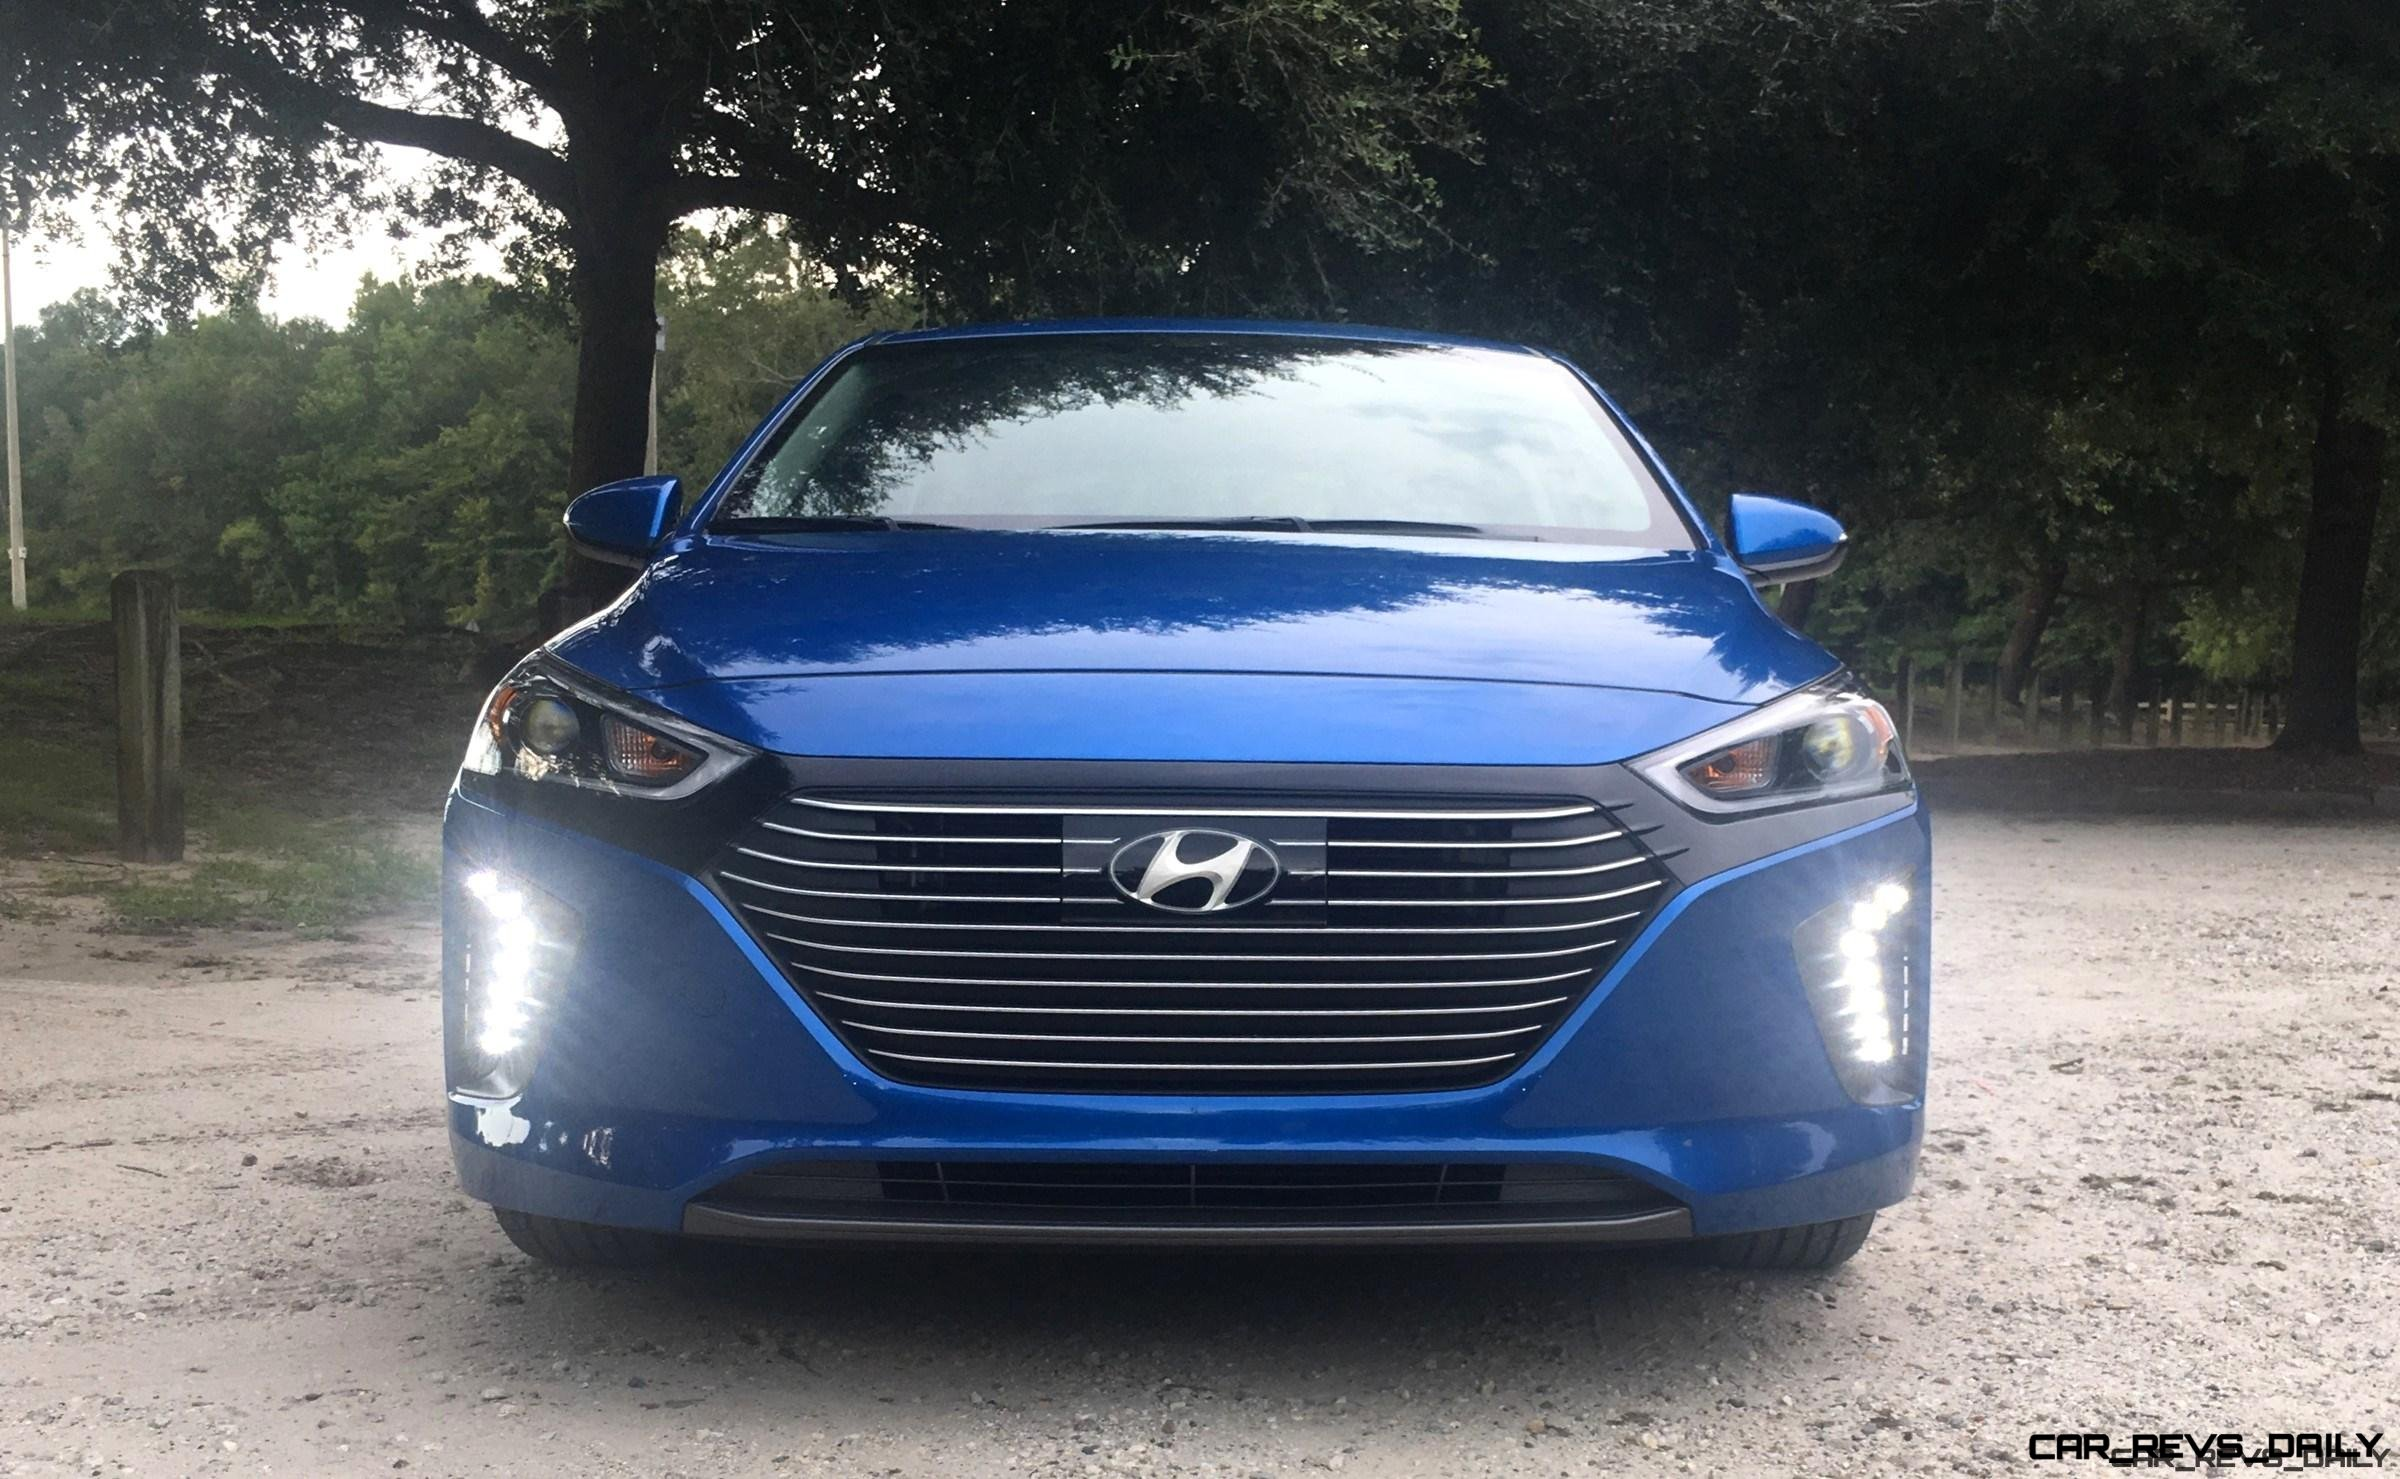 2017 Hyundai Ioniq Hybrid - Road Test Review » LATEST NEWS